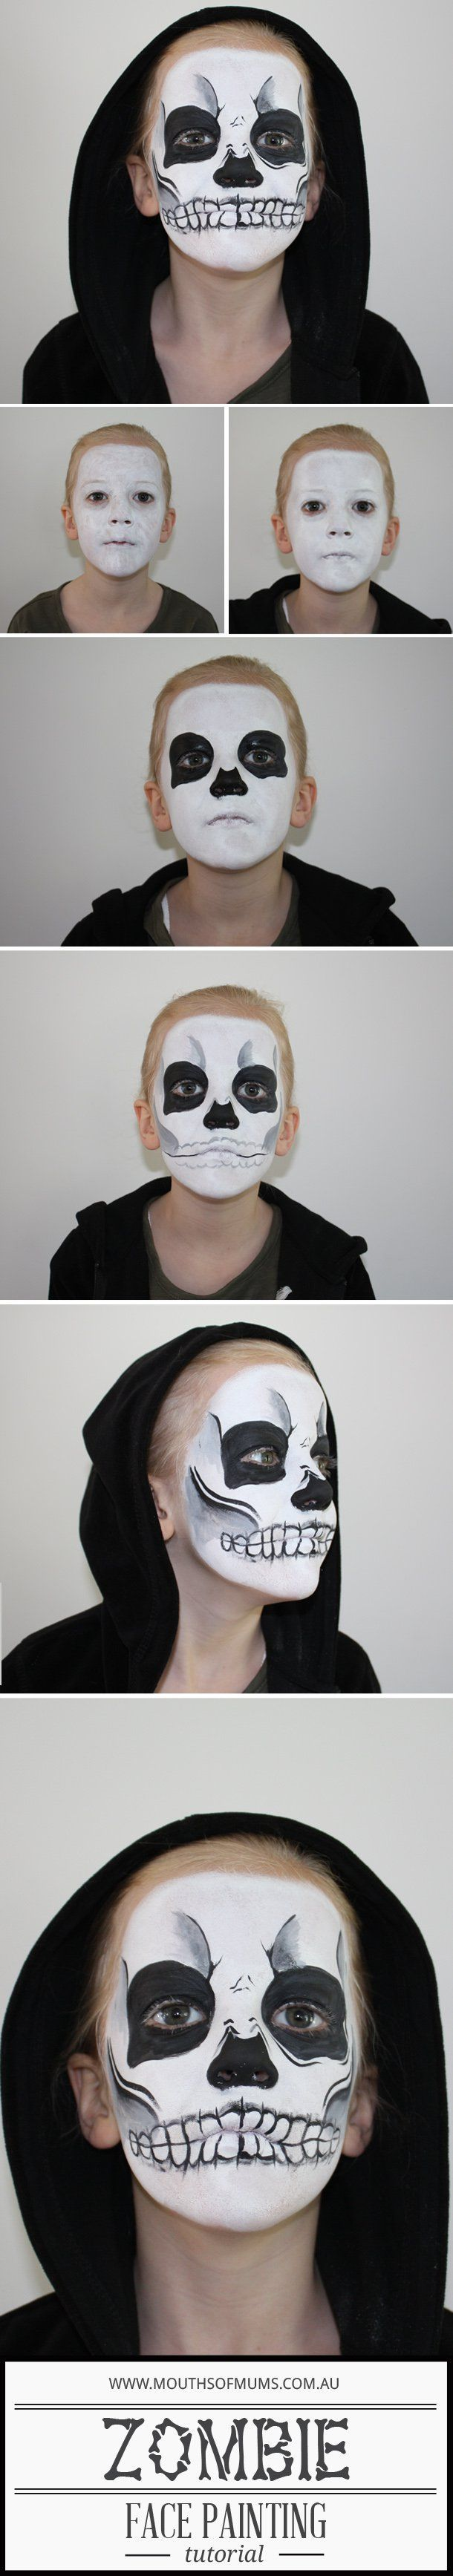 Kids Zombie Face Painting Tutorial